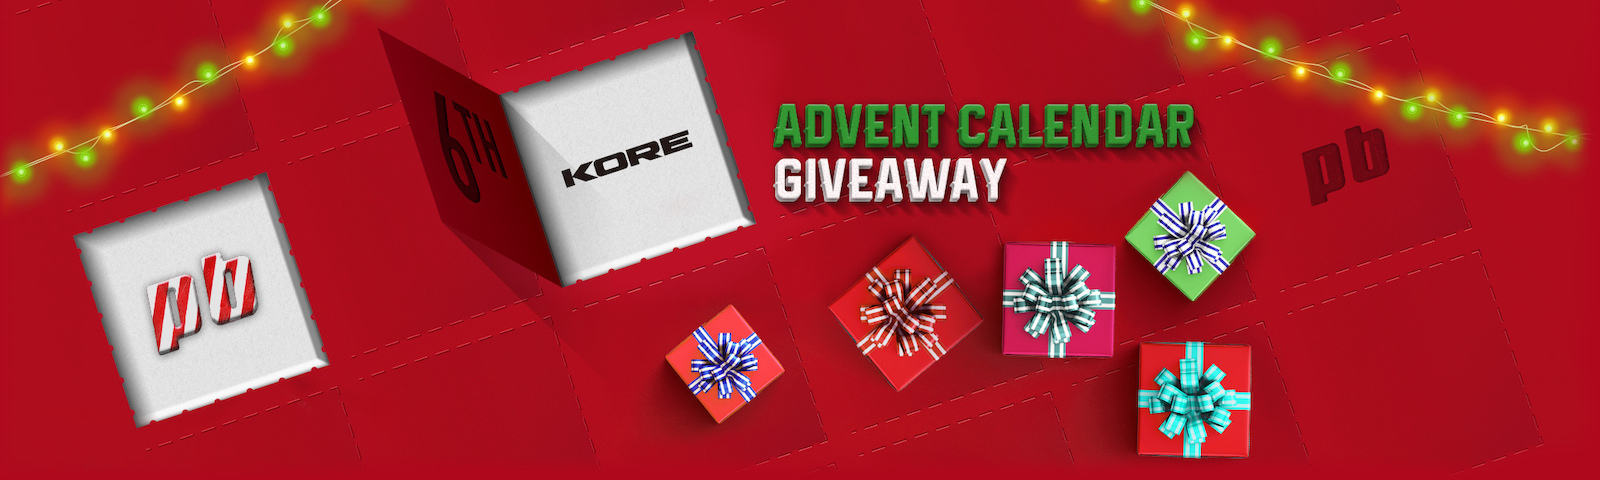 Advent Banner Dec 6 - Kore